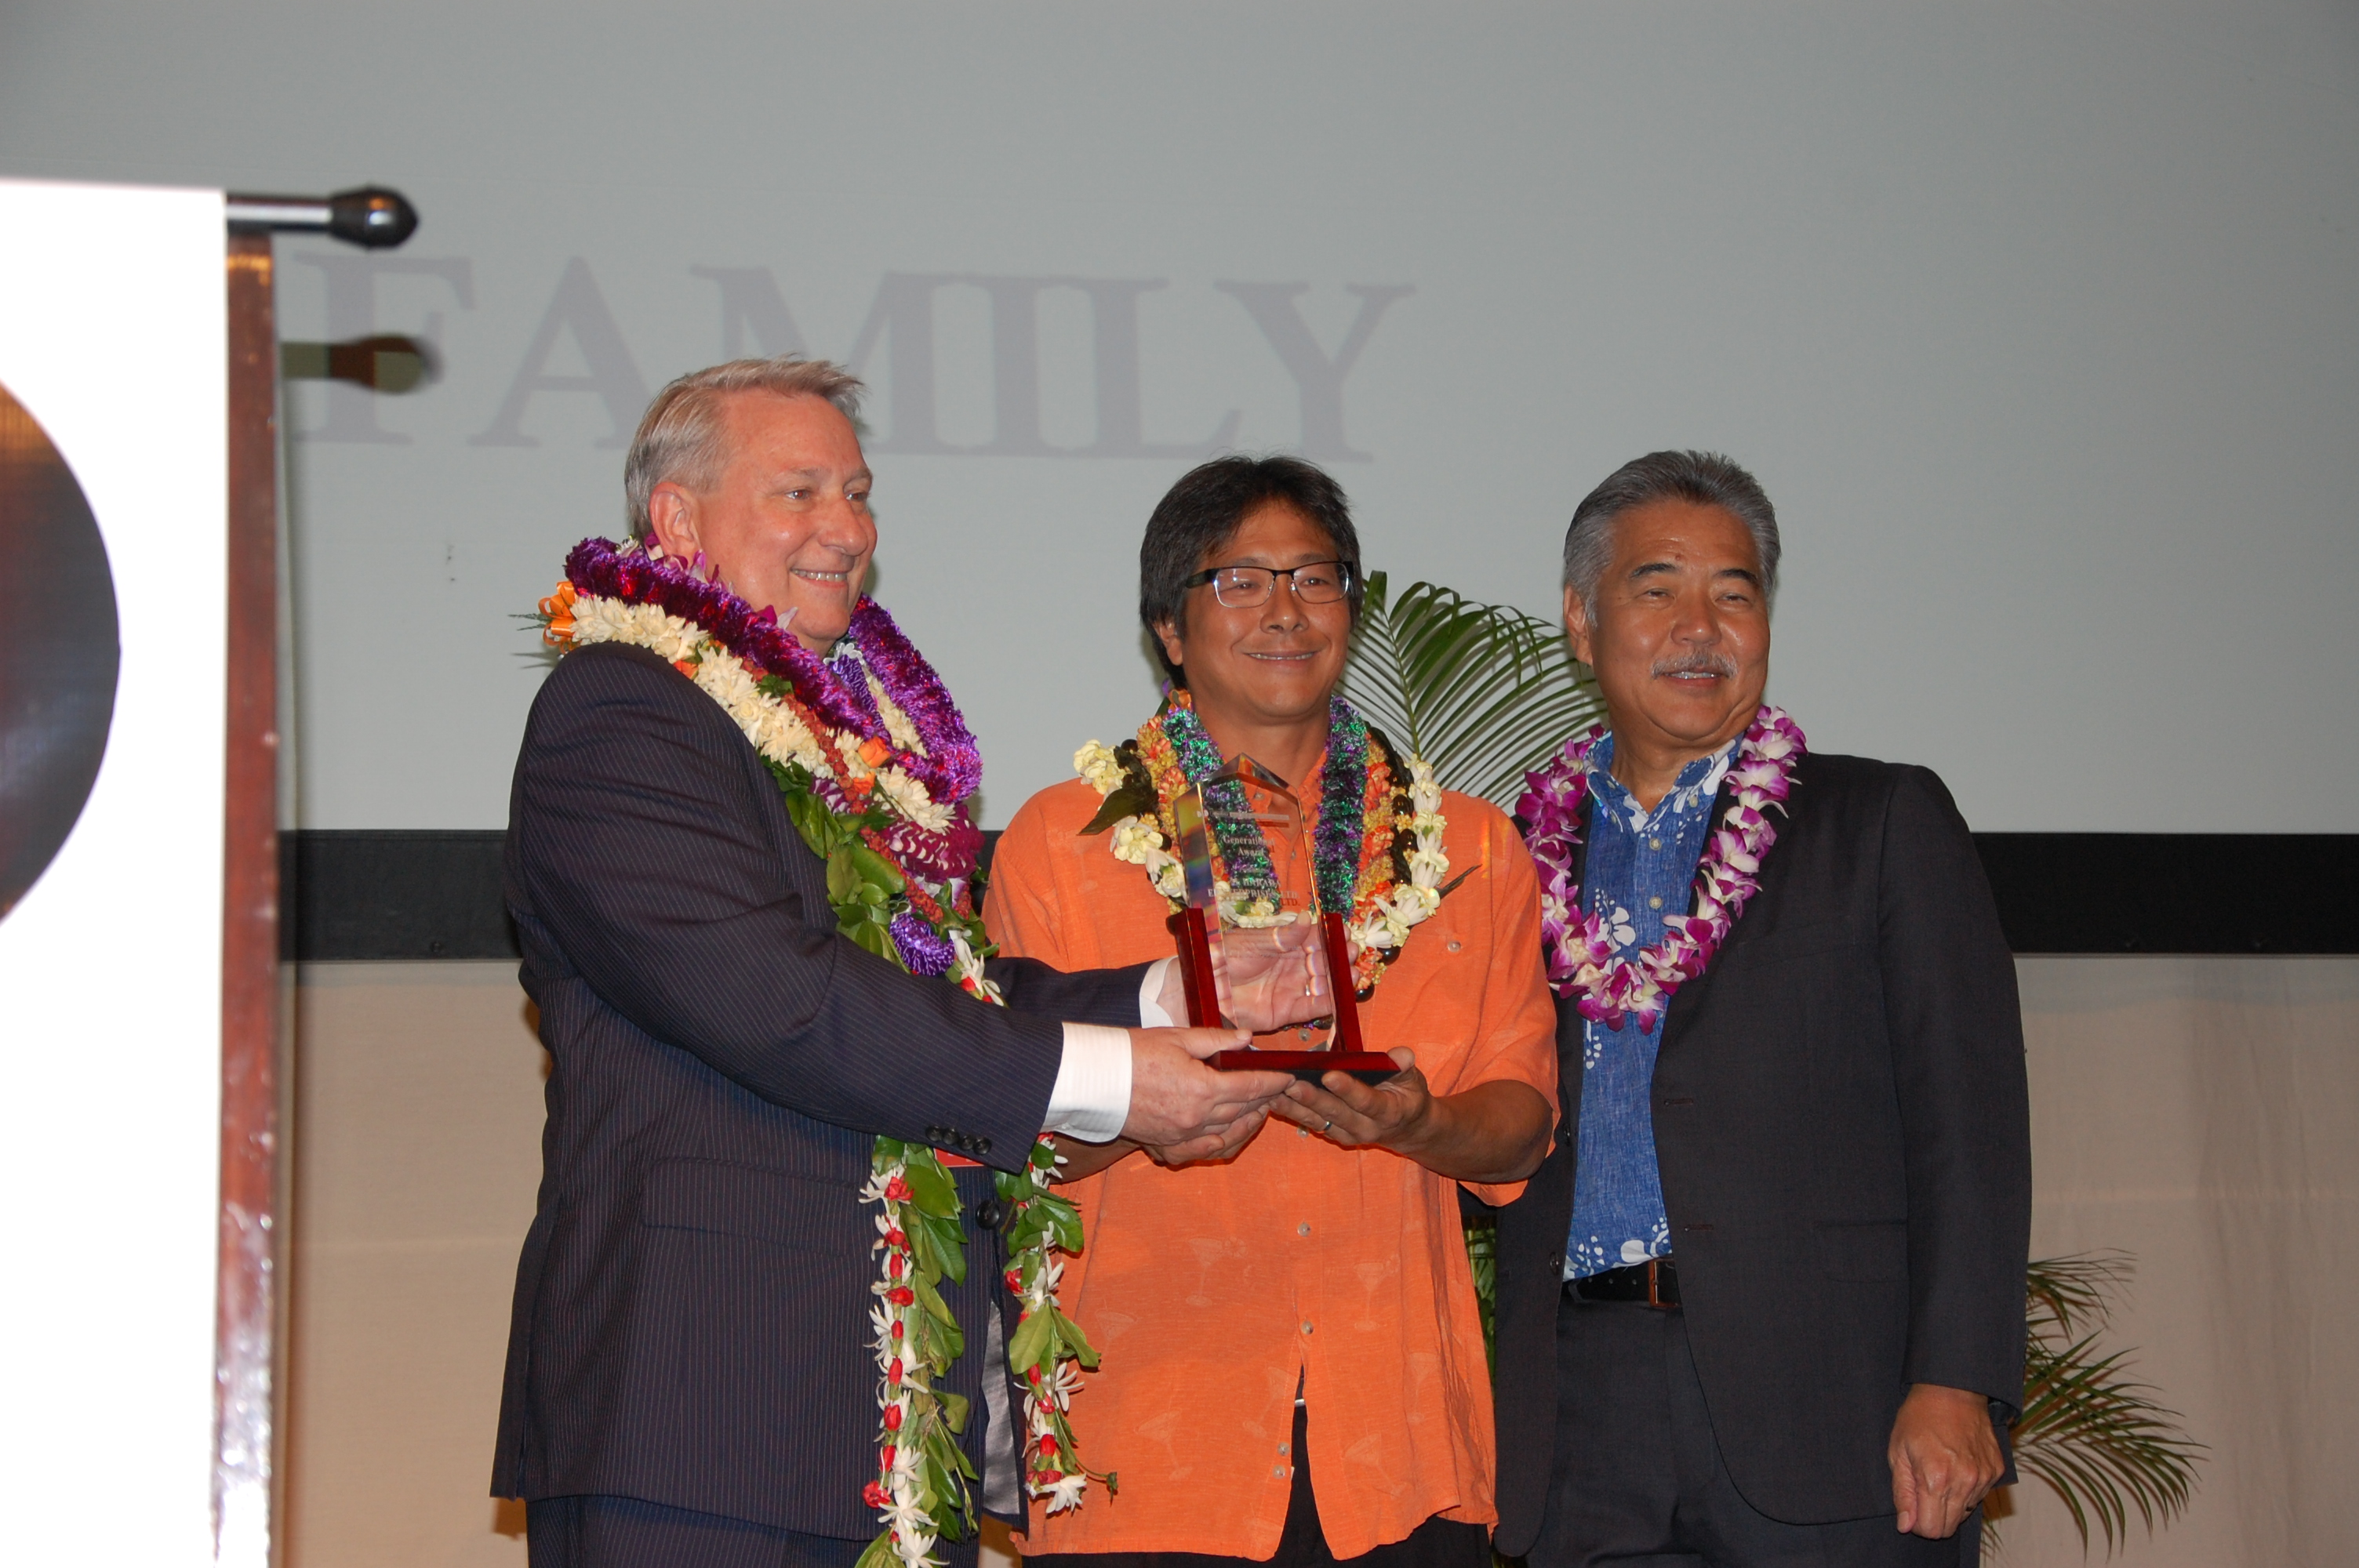 Scott Harada, representing Marian Harada Enterprises, Inc. accepted the 2017 HJCC Generational Award, which was presented by immediate past president Dave Erdman (left) and Gov. David Ige.